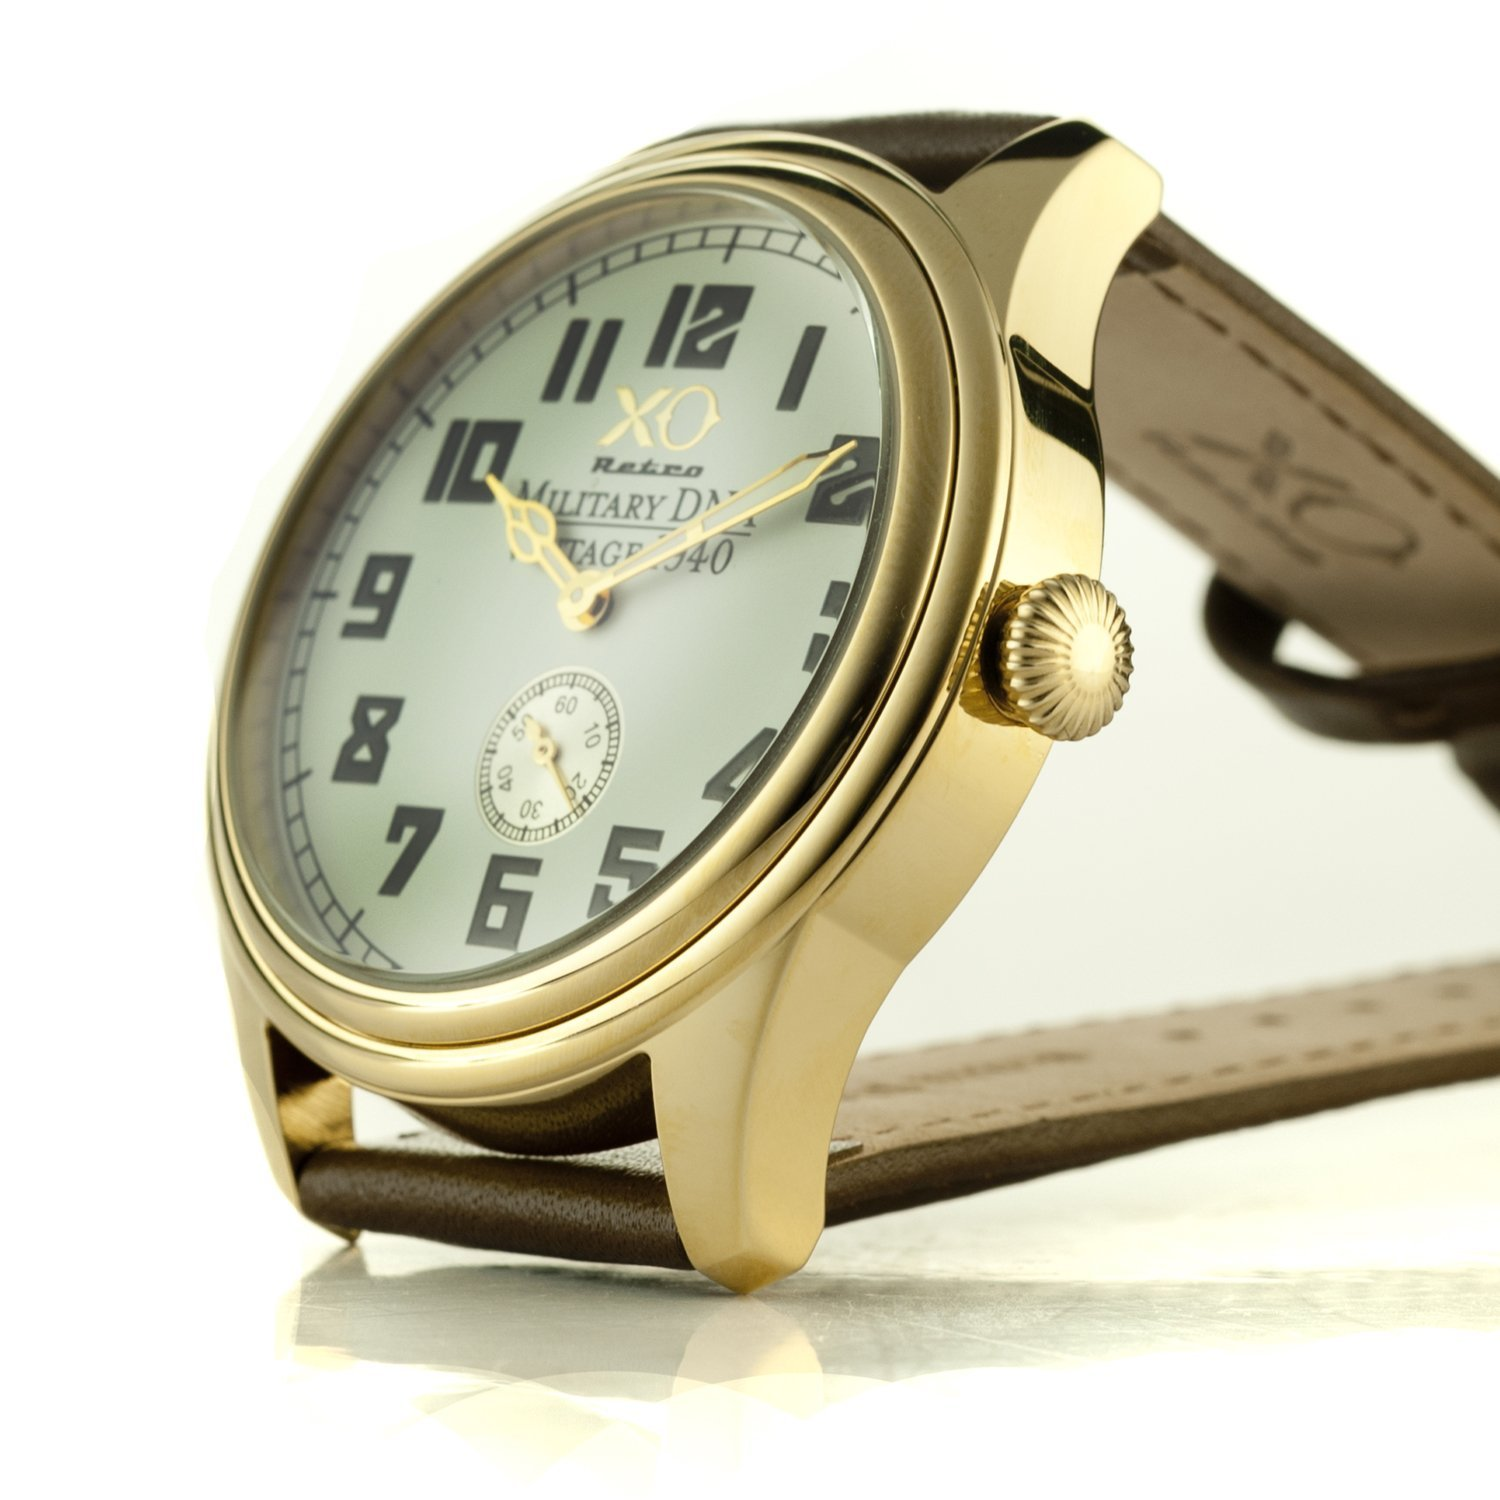 Men's Vintage Military Watches